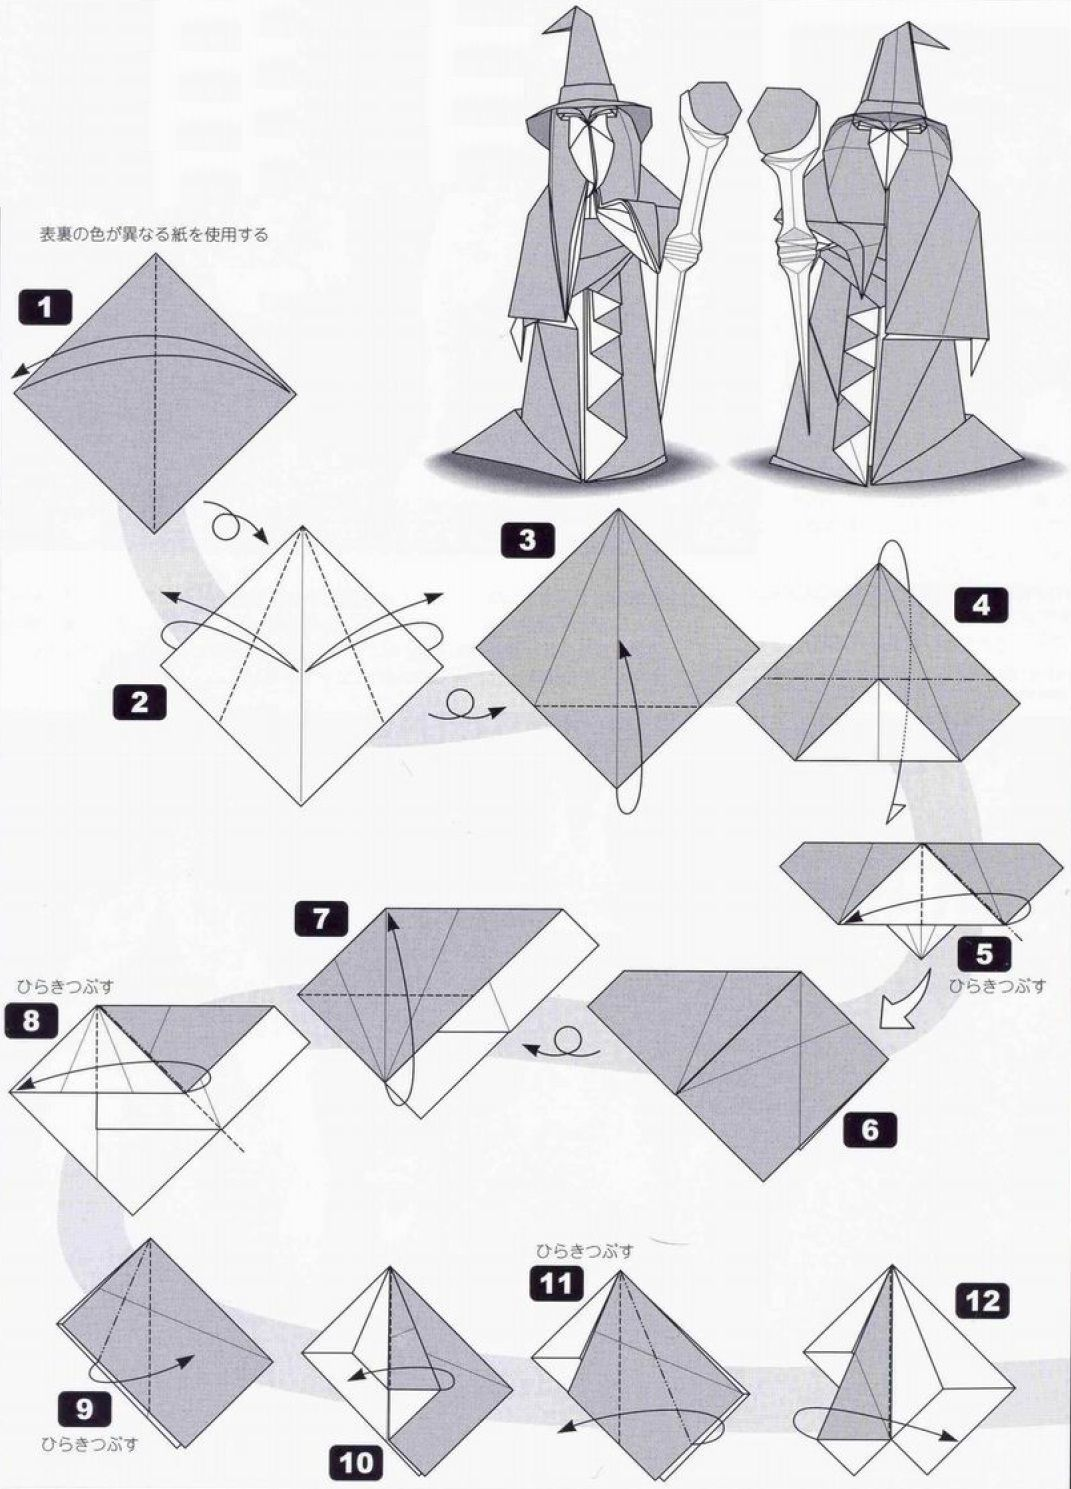 Pin By Louis On Stuff Pinterest Origami Kirigami And Craft For More Photos Diagrams Tutorials Of His Cool Star War Wizards